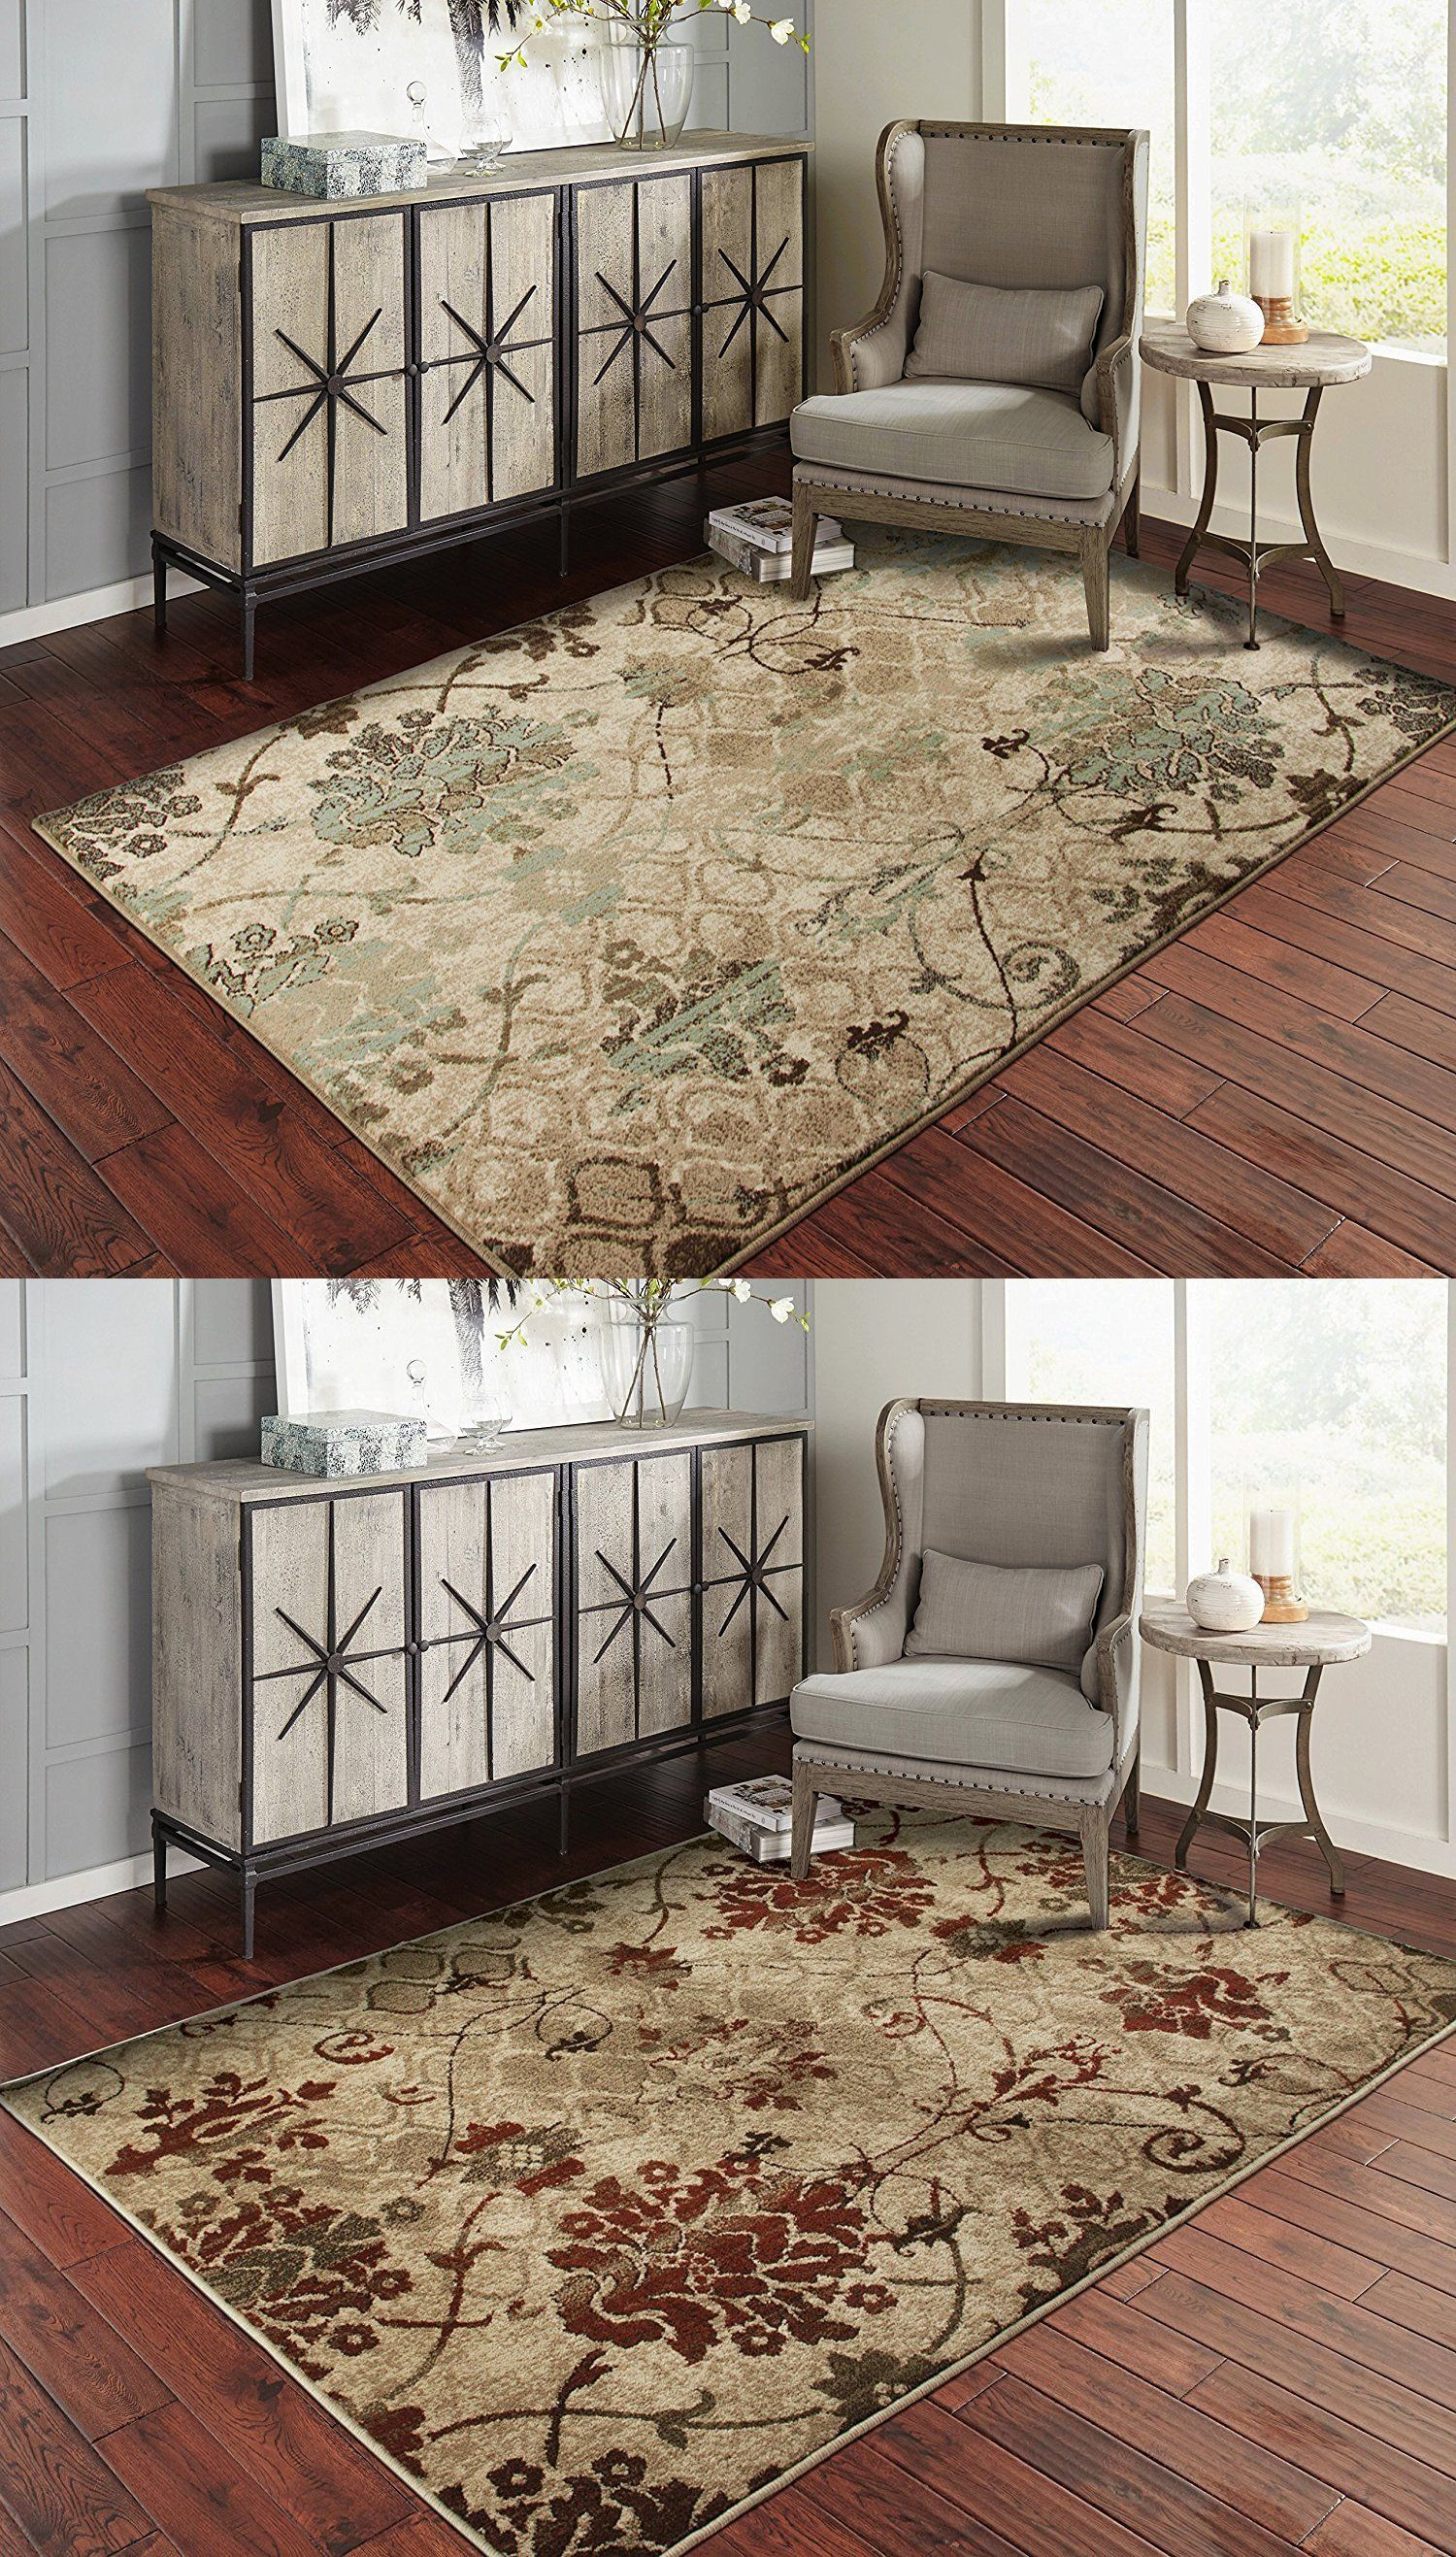 Modern Area Rugs For Living Room 8x10 Floral Modern Rug 5x8 Ebay Area Room Rugs Rugs In Living Room Modern Area Rugs